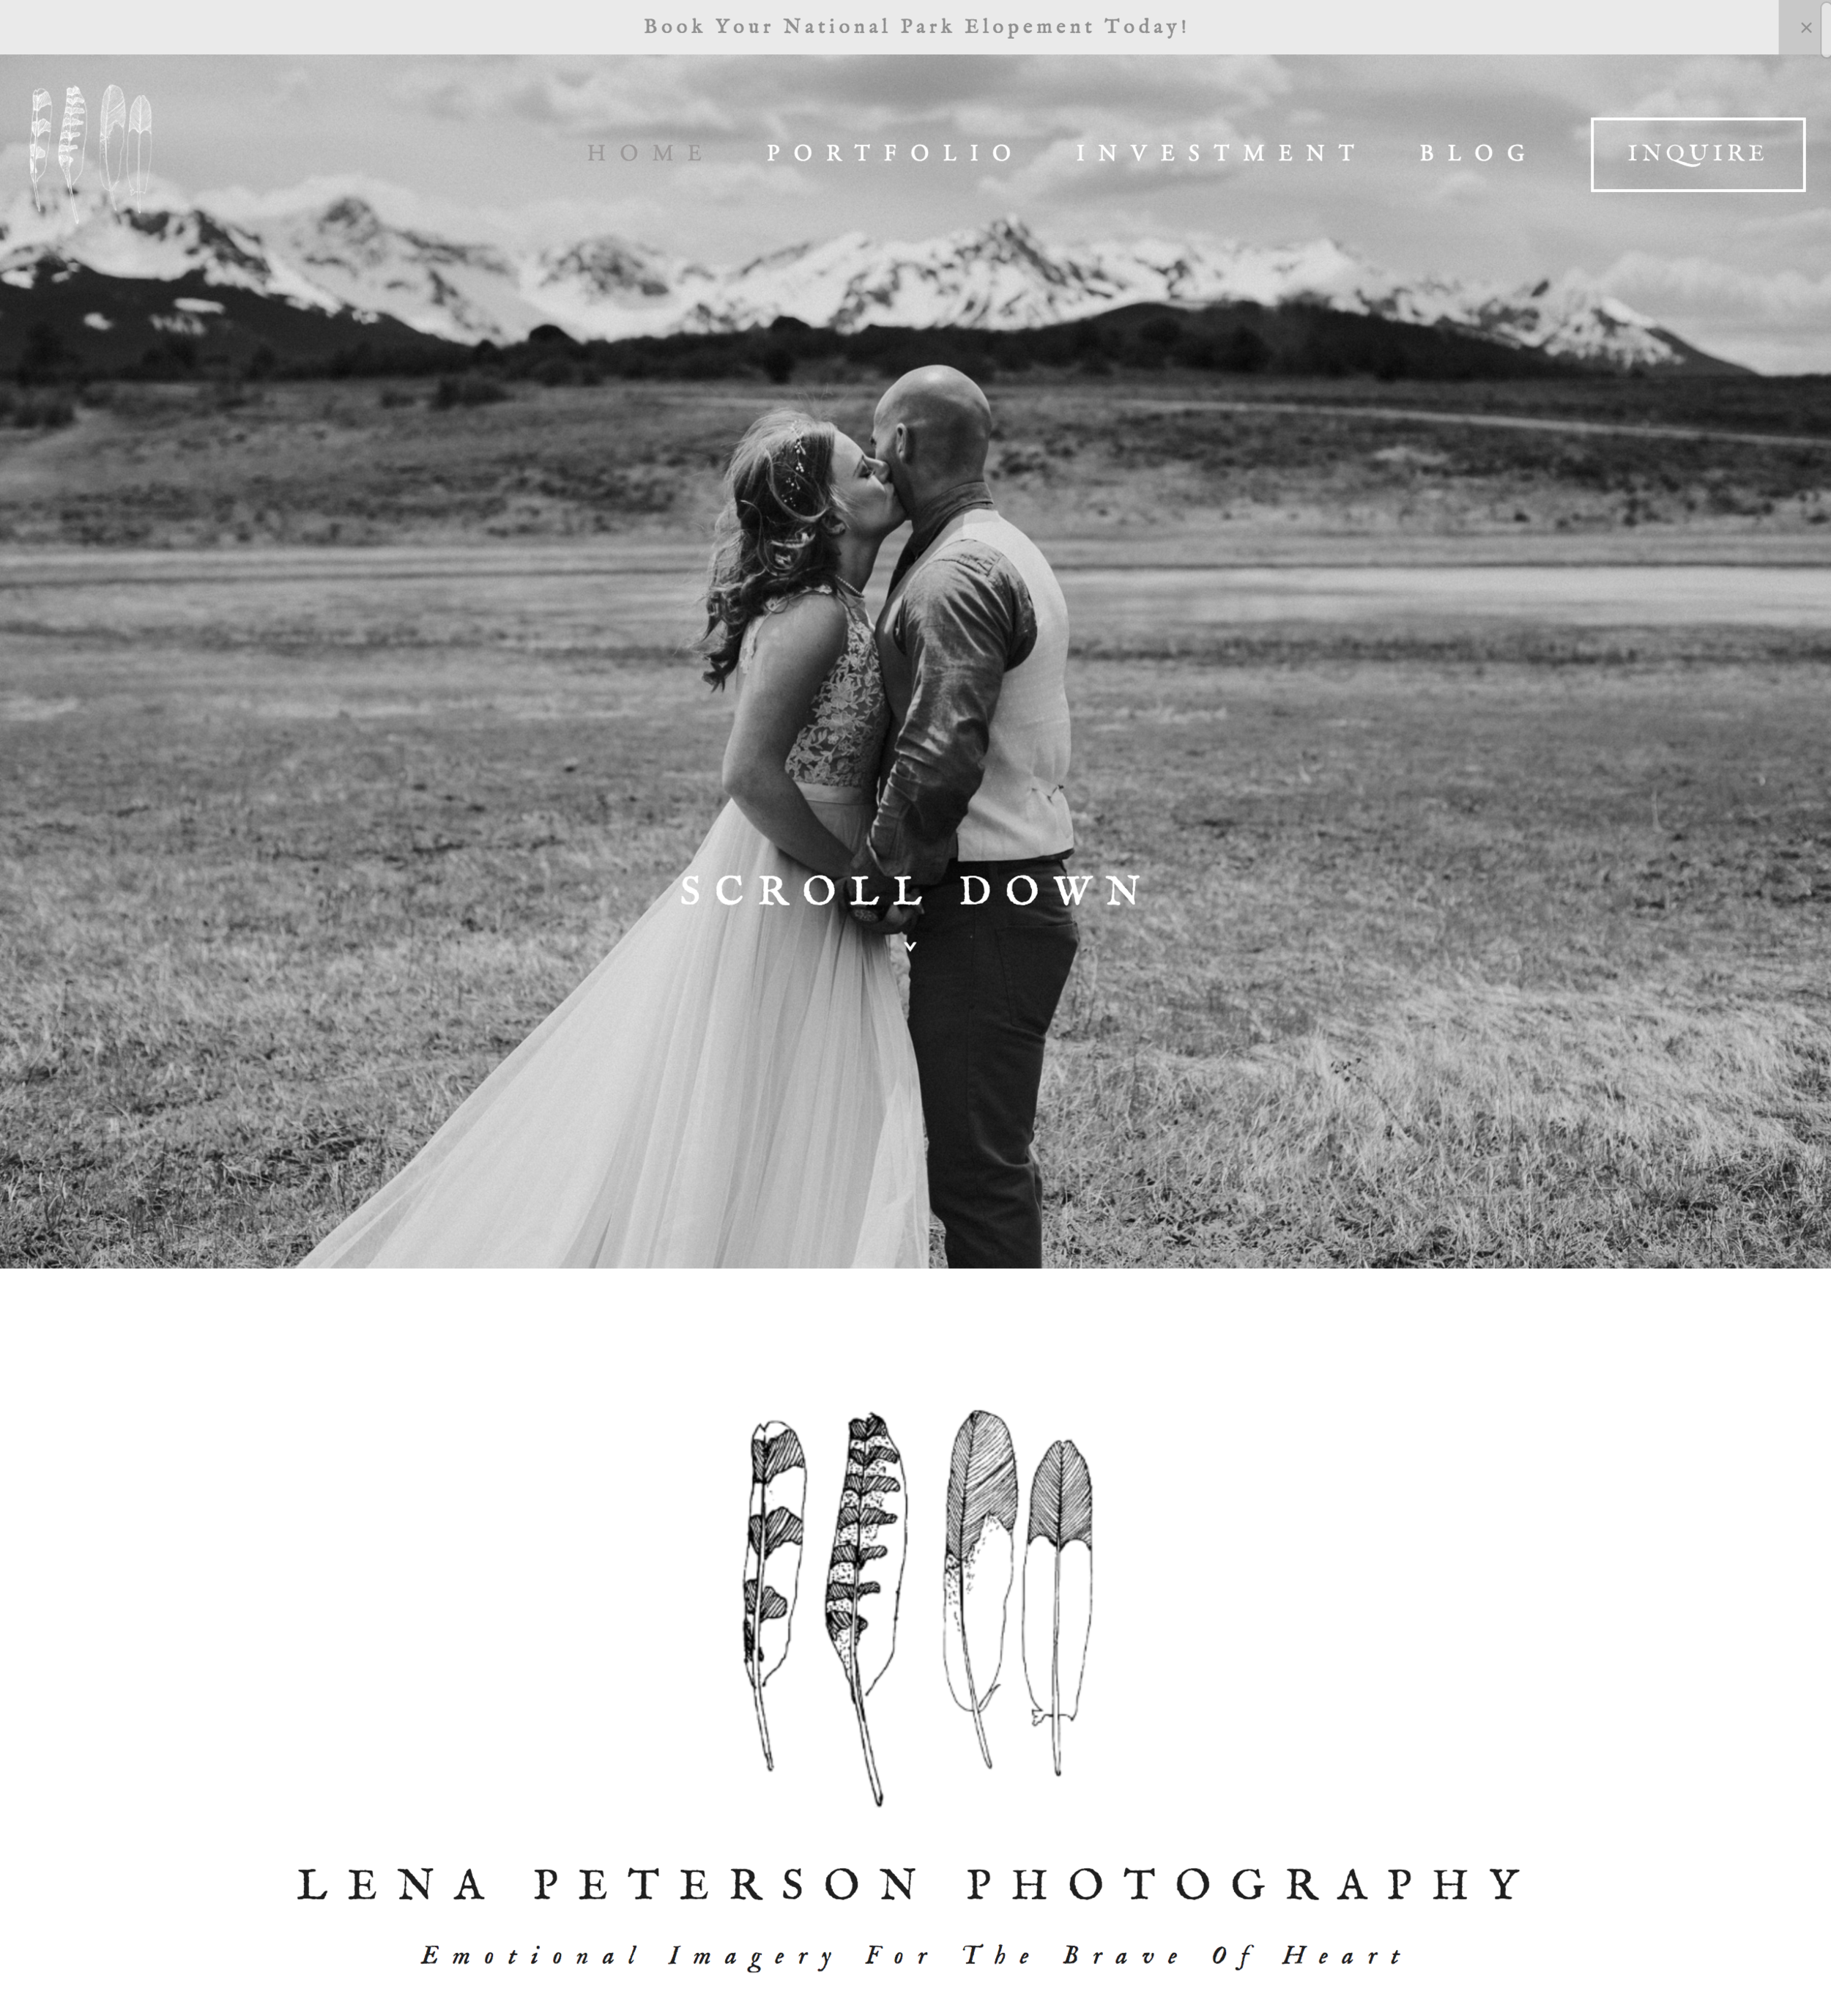 Lena Peterson Photography Website